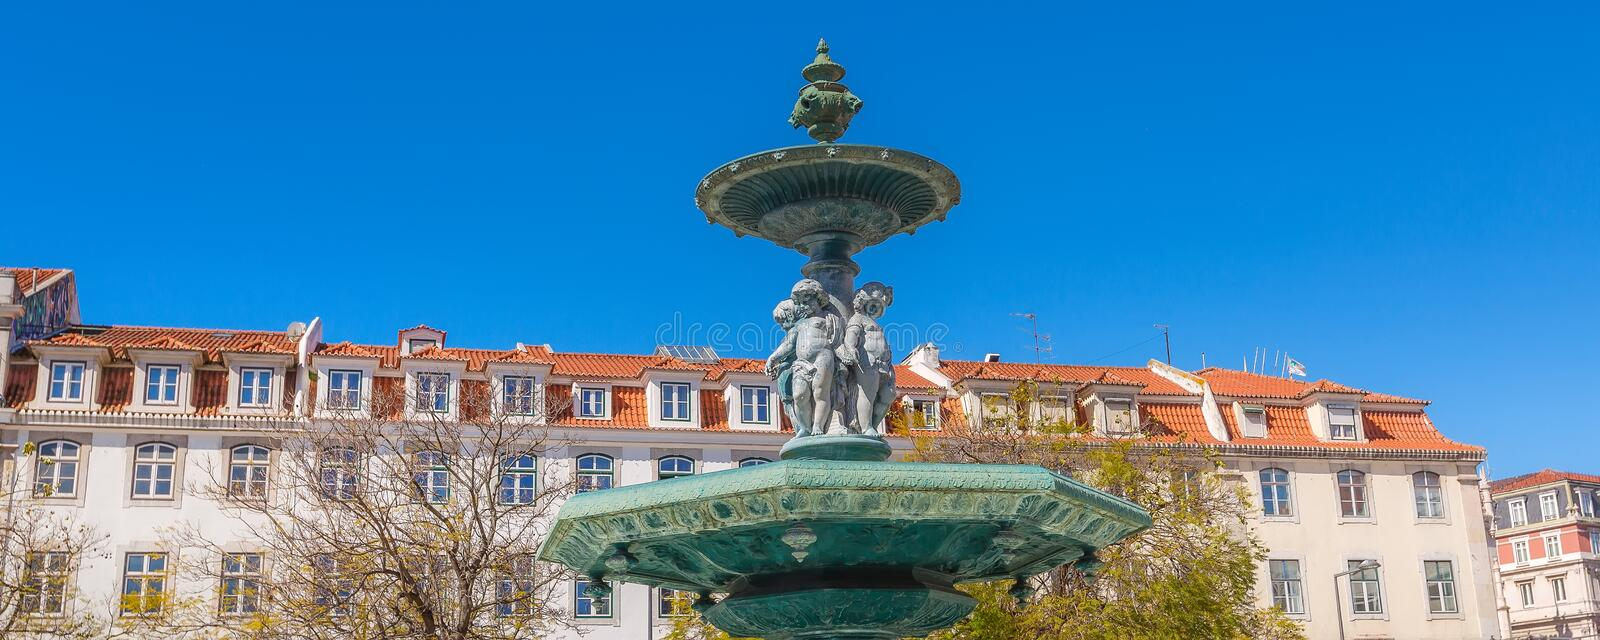 Lisbon, Portugal Rossio square fountain close-up stock images